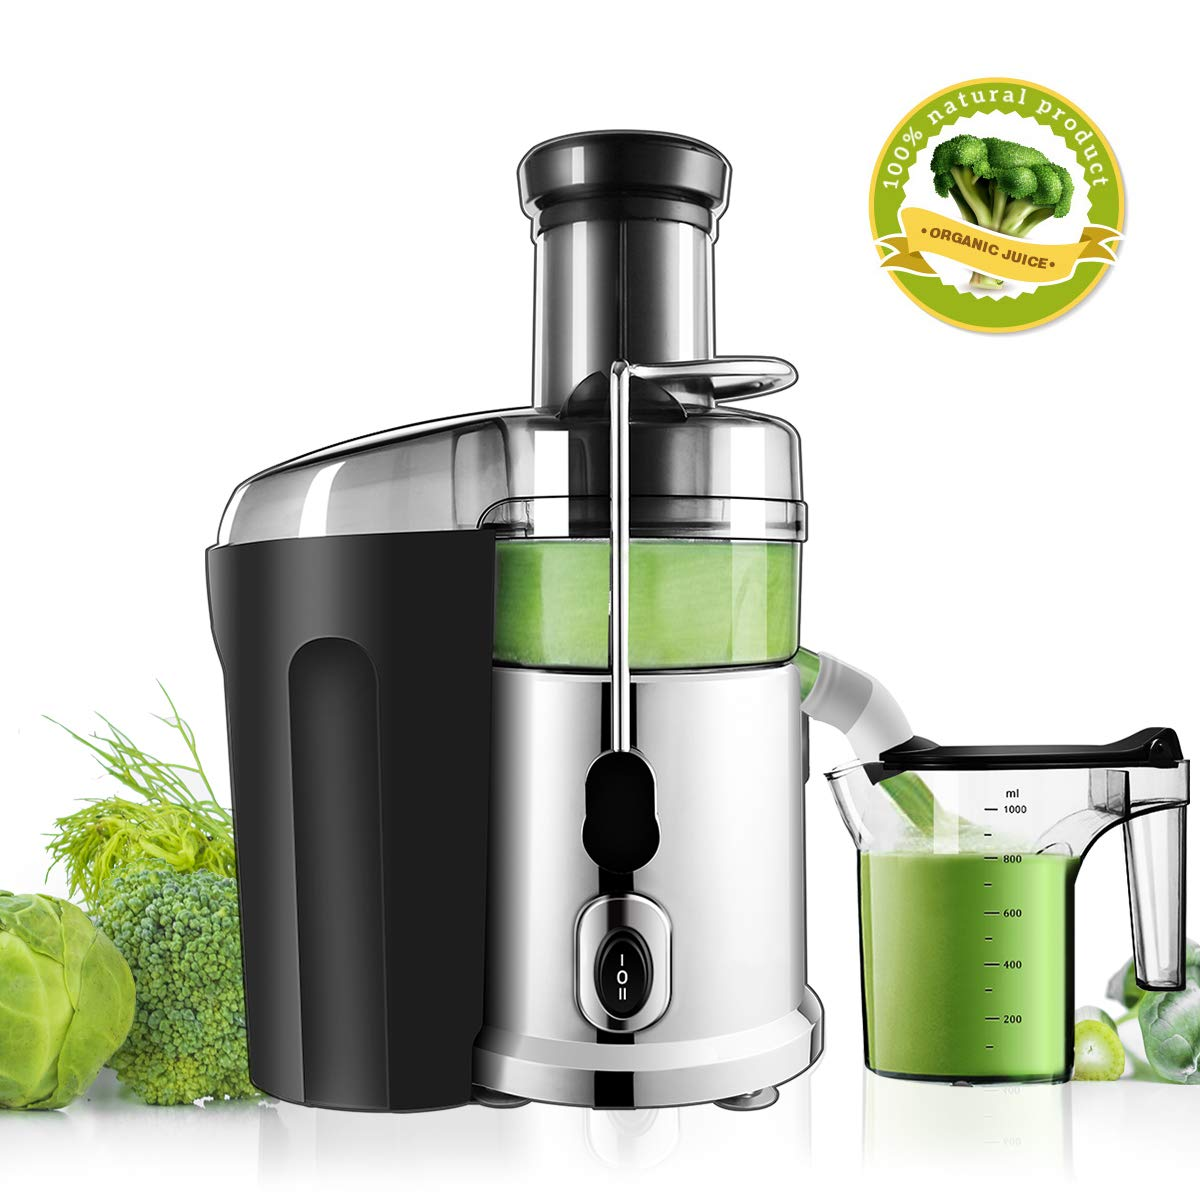 Baabyoo Electric Juicer Centrifugal Juicers Fruit and Juice Extractor Juicer with 1L Custom Juice Cup Fruit Squeezer 850Watt Juice Maker Stainless Steel